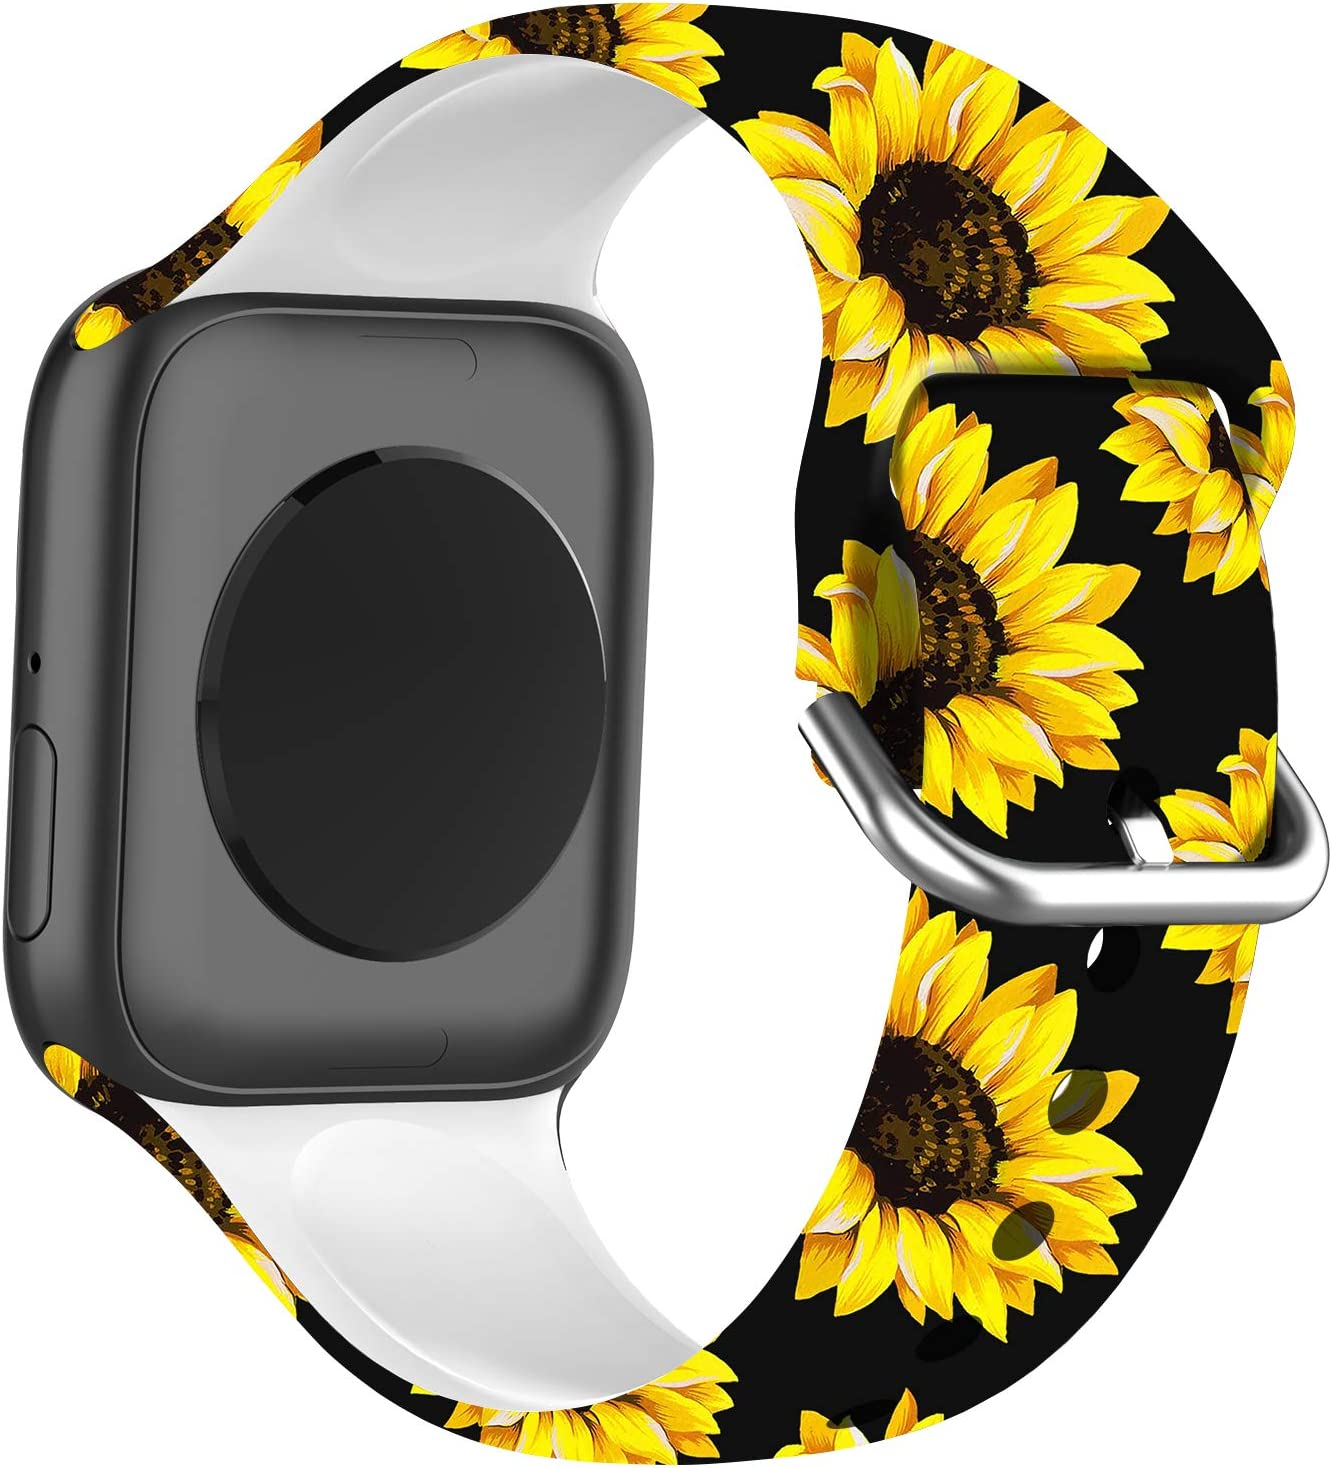 BMBMPT Compatible with Apple Watch Band 38mm 40mm 42mm 44mm, Soft Silicone Floral Fadeless Strap Replacement Bands for iWatch Series 6/5/4/3/2/1 SE.